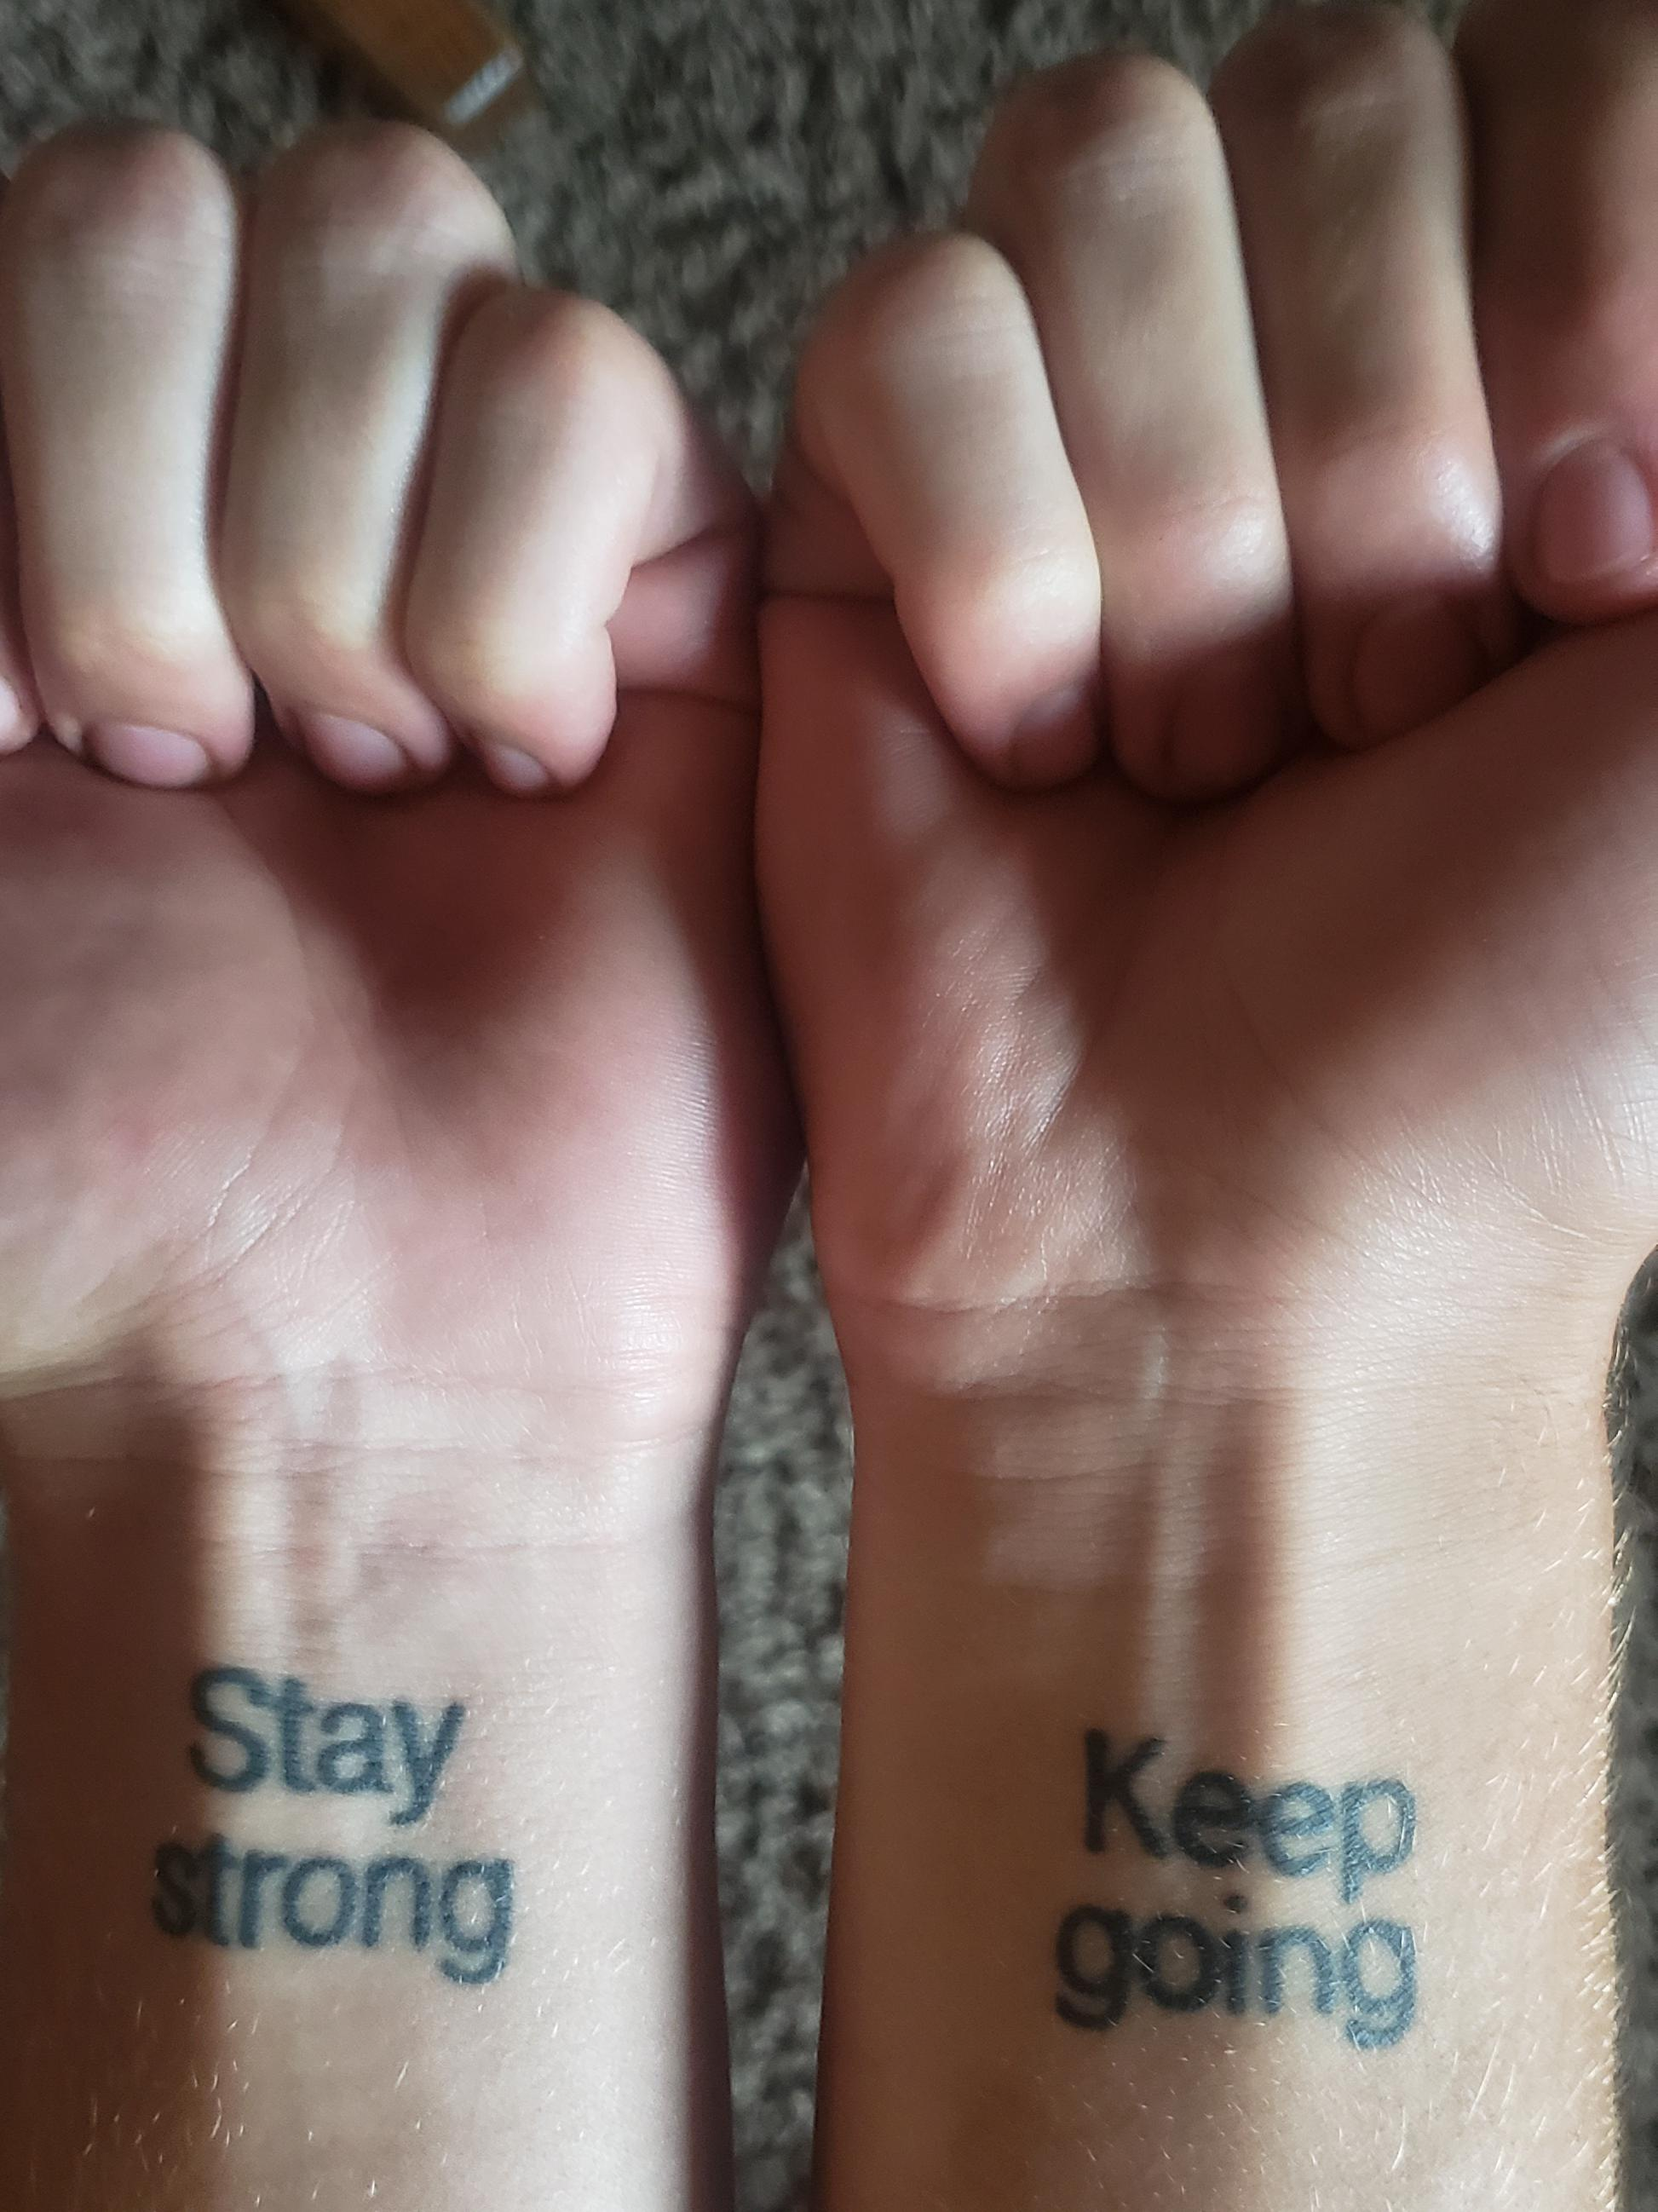 [IMAGE] My suicide survivor tattoos, and my simple life mantra.